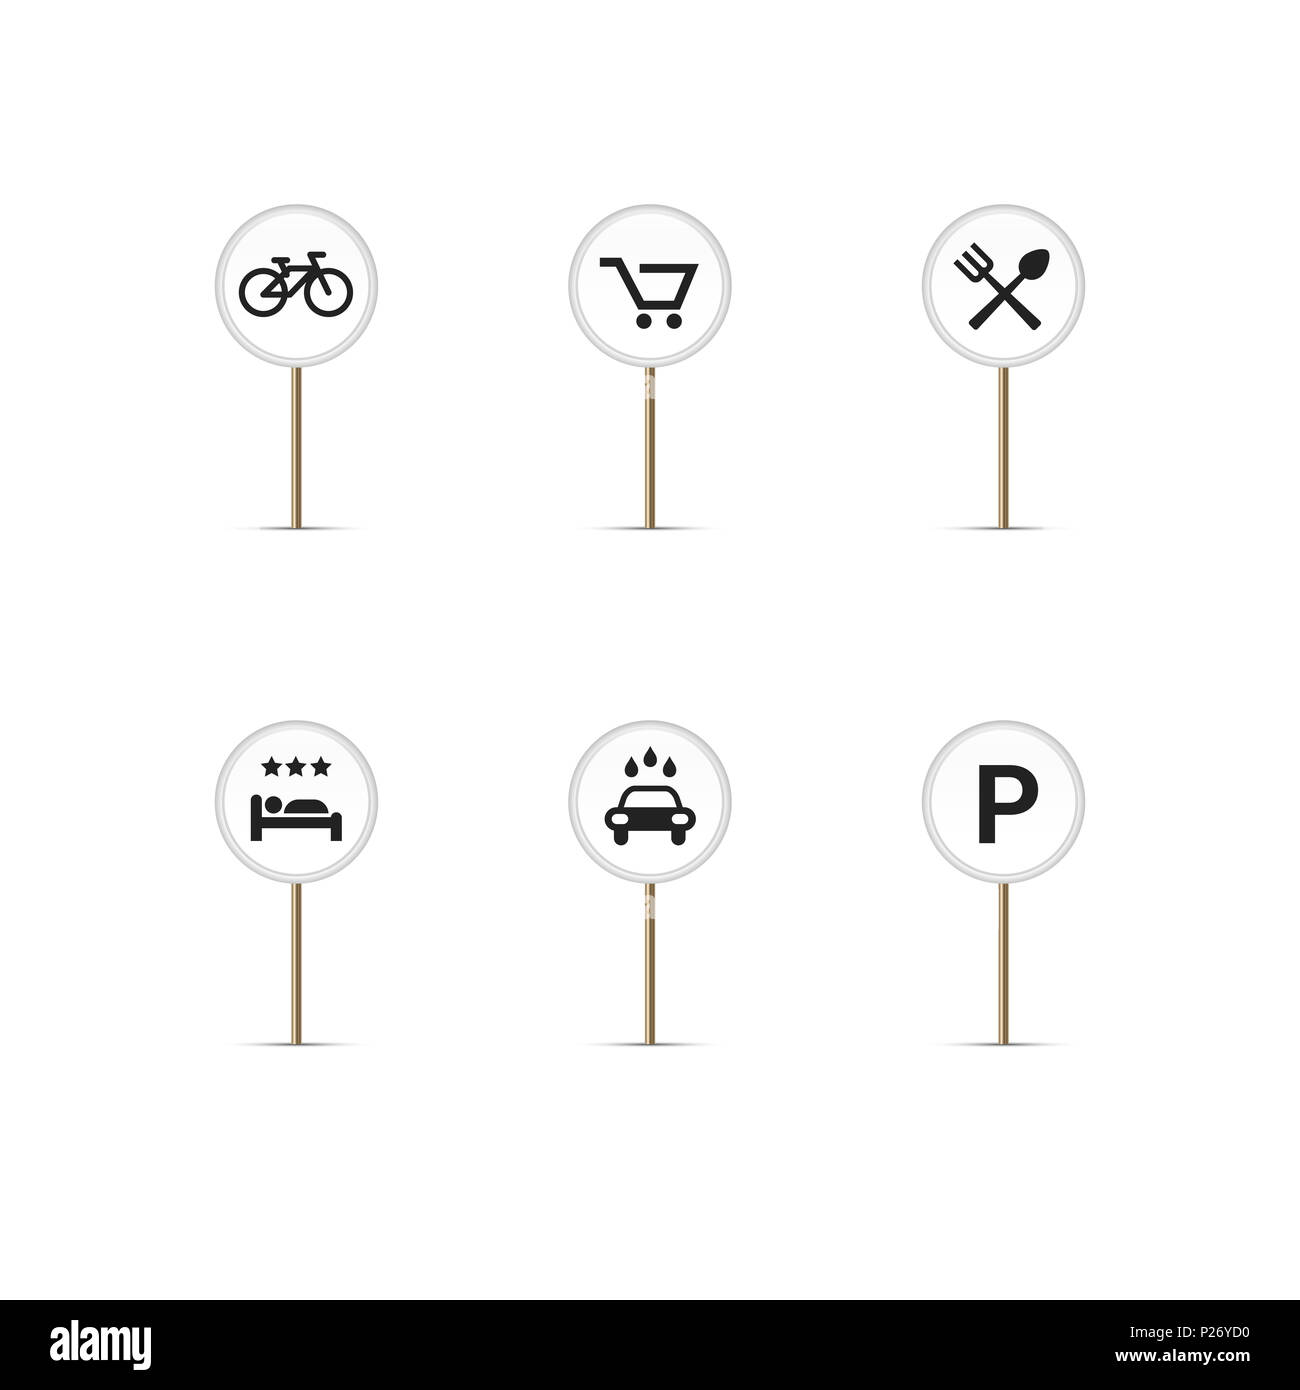 White Round Map Pins with Simple Icons. Bike Path, Cart ... on